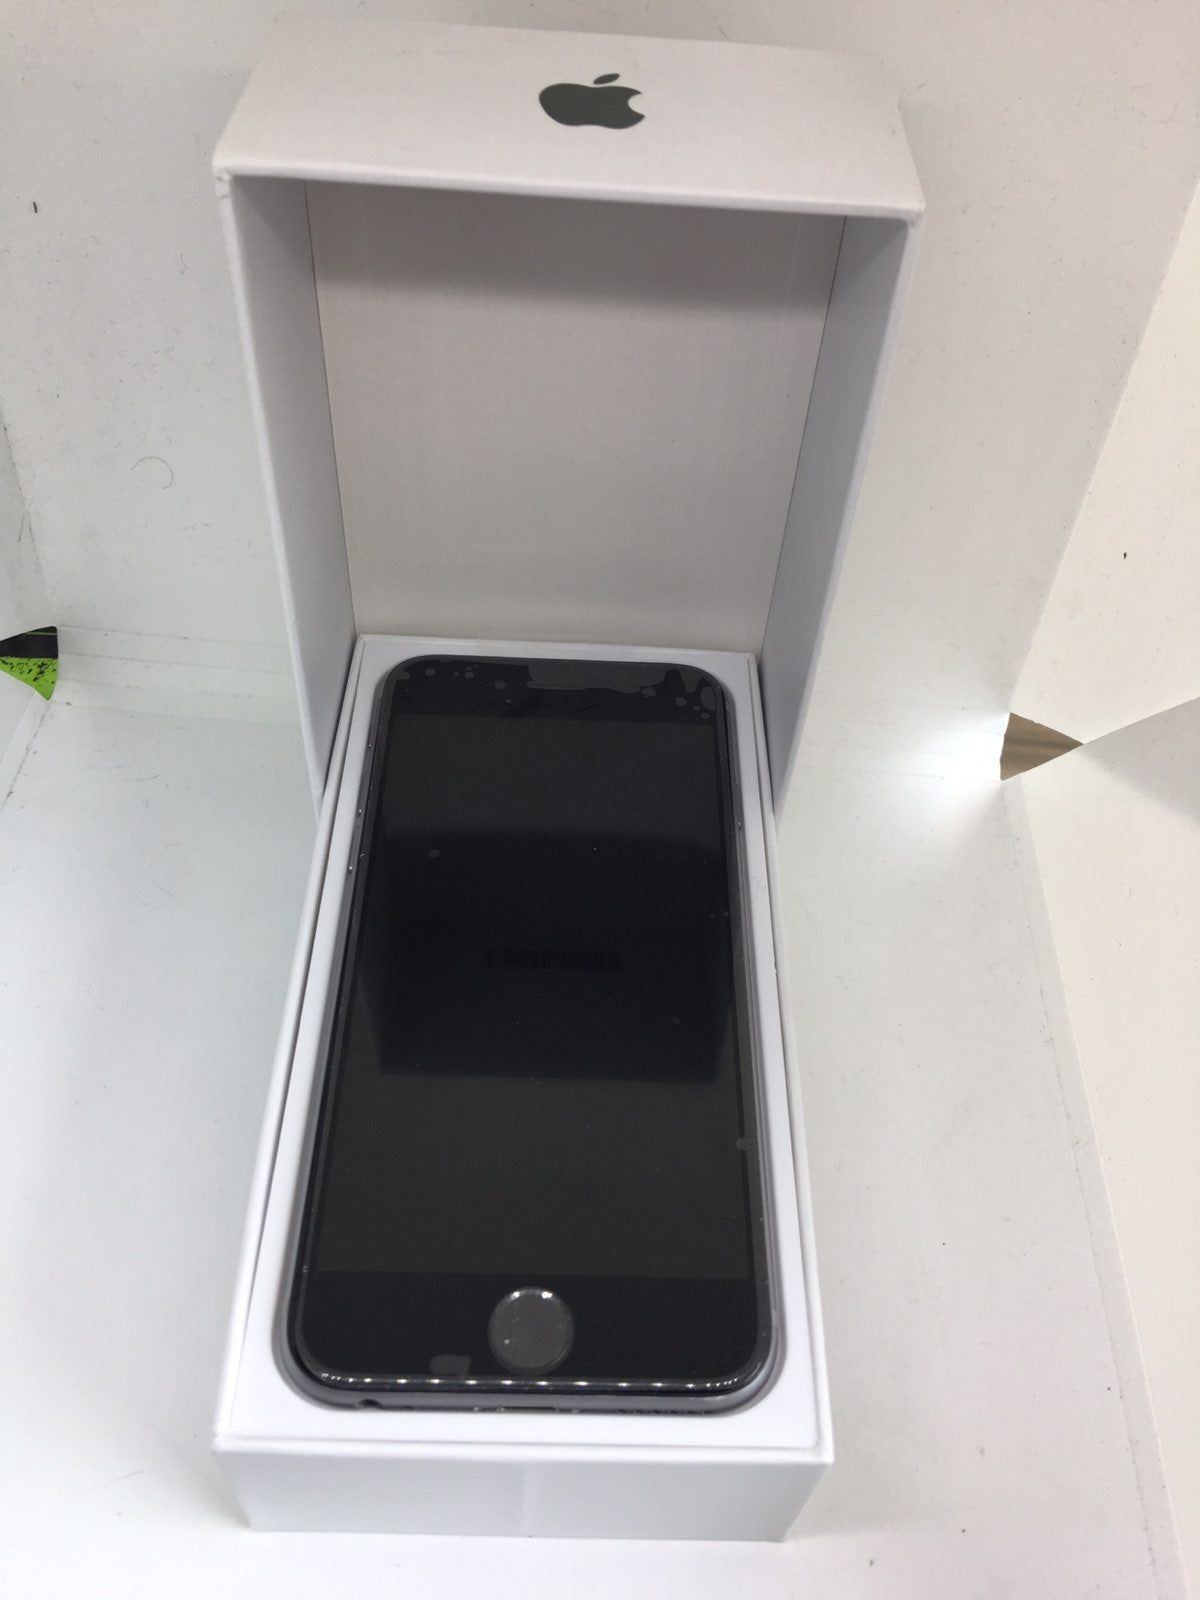 Apple iPhone 6s 32GB Straight Talk Space Gray in 2020